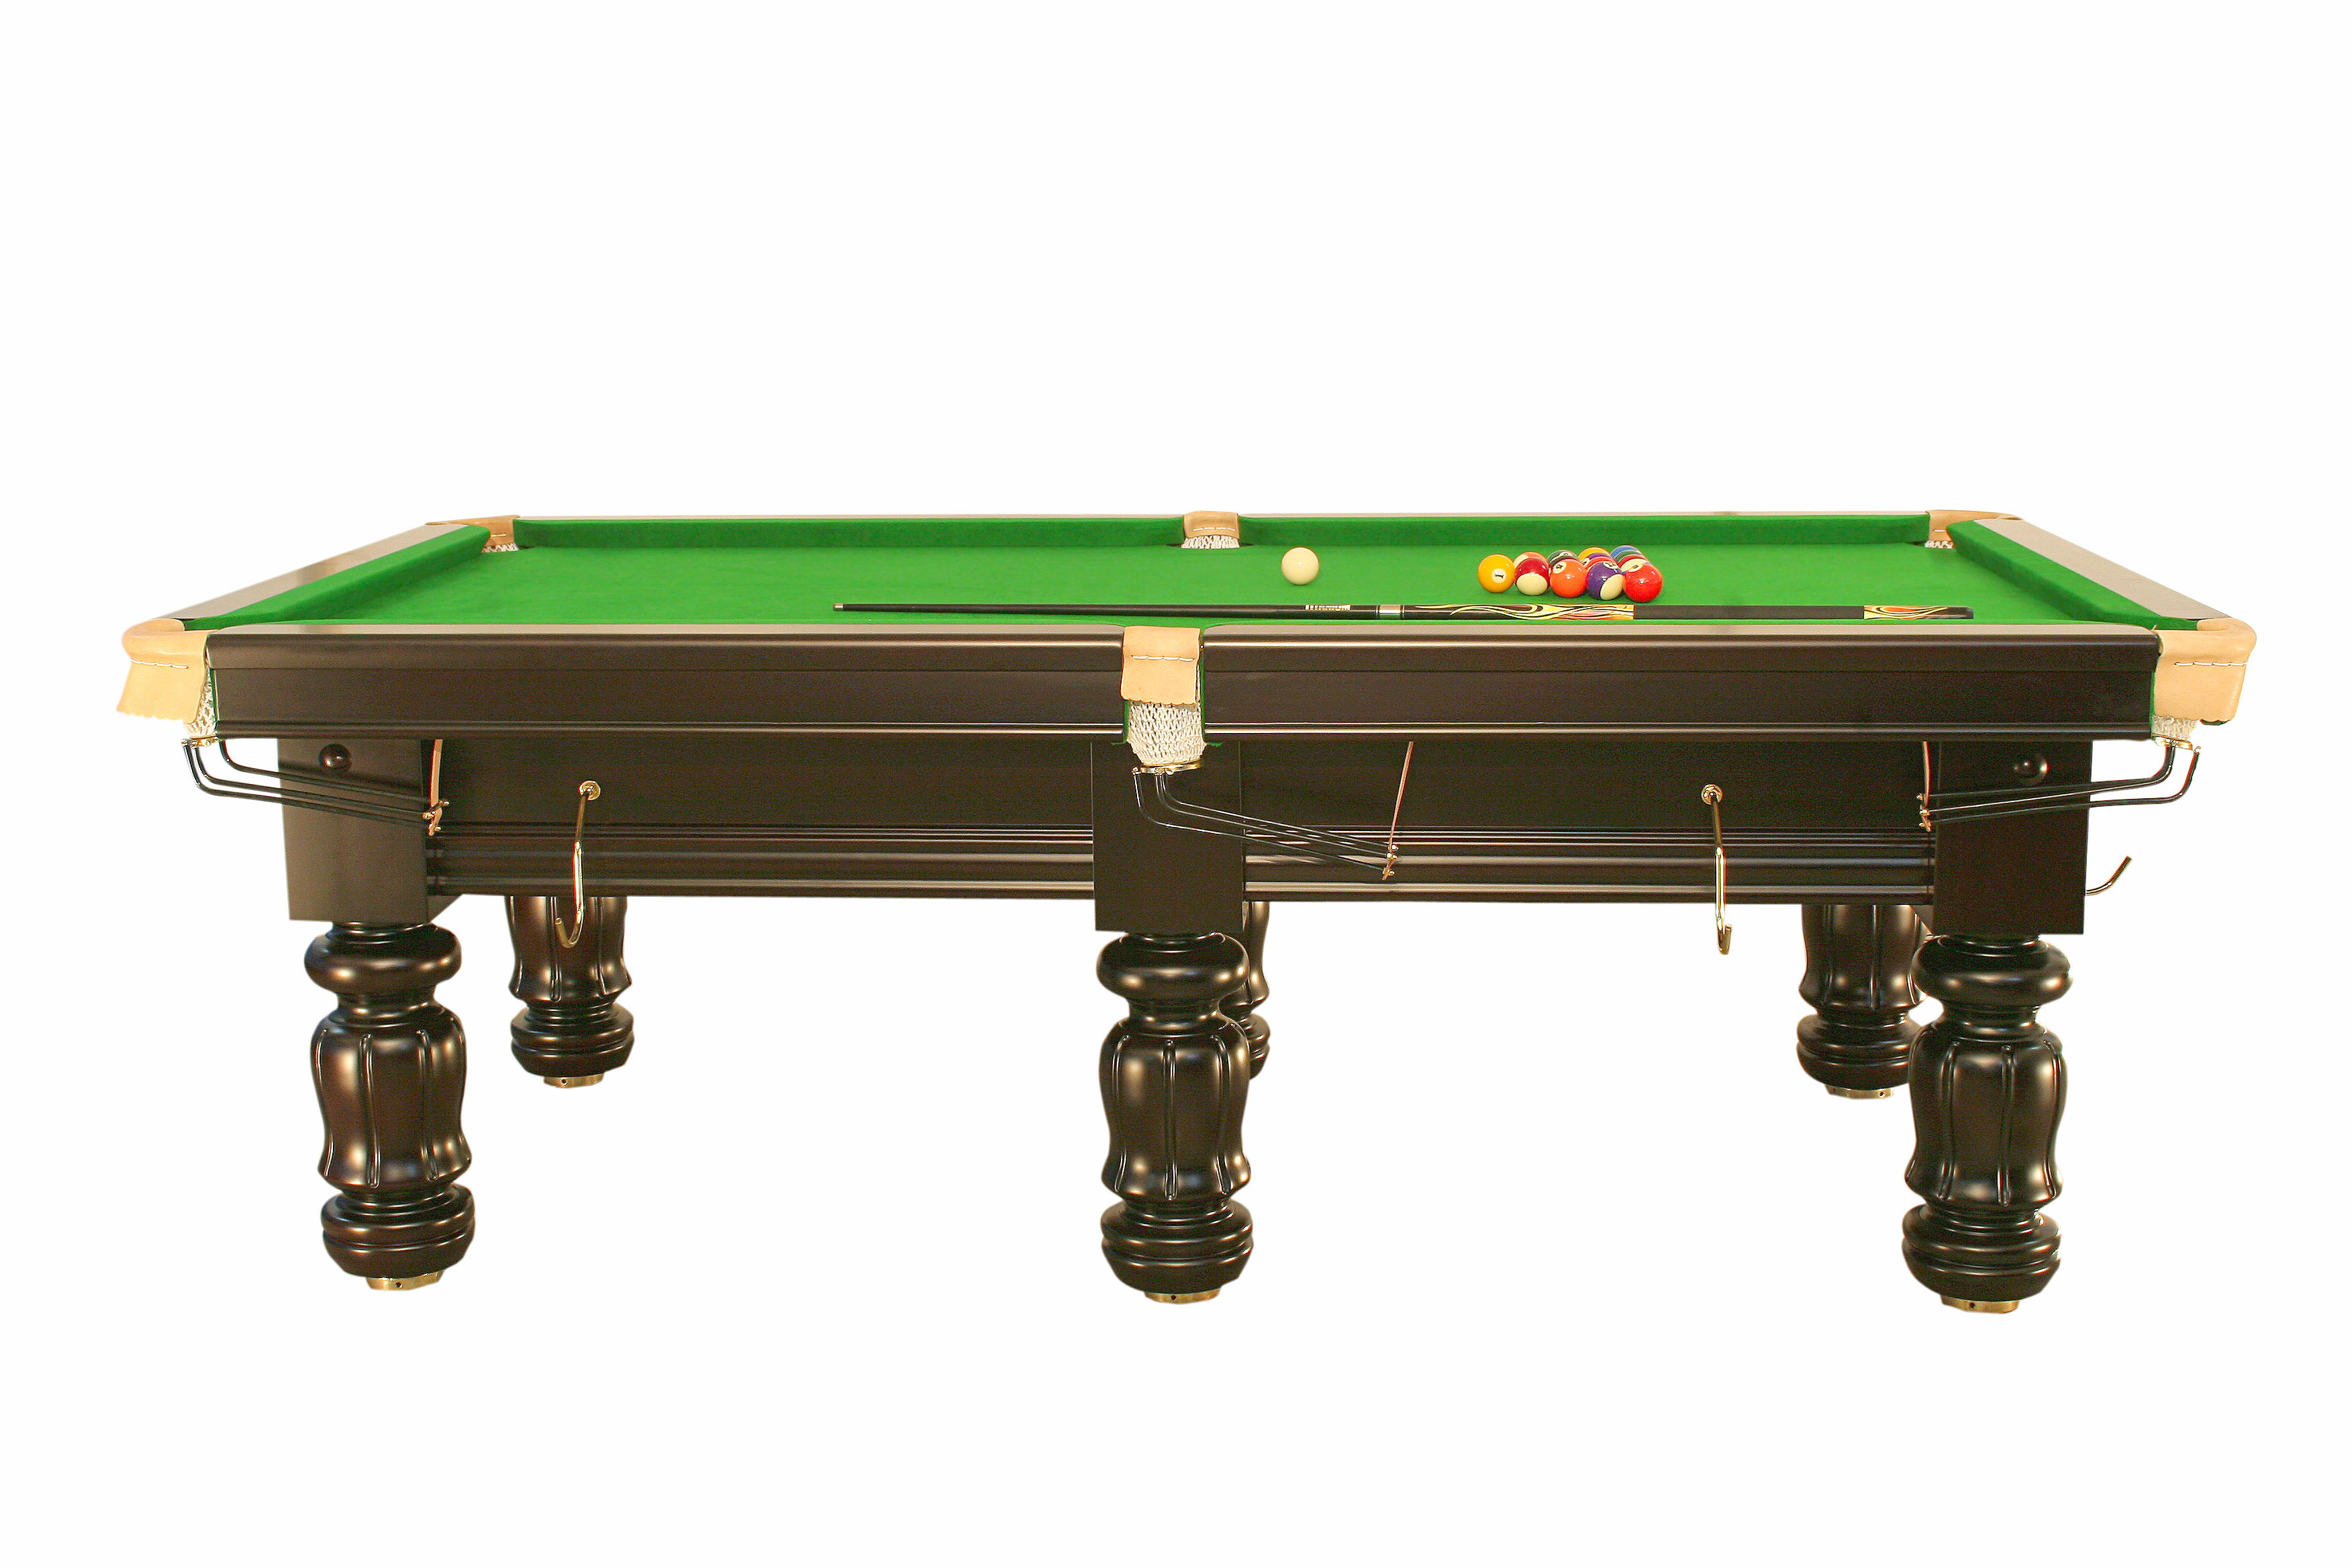 9 Feet x 5 Feet  French and Regular Pool Table.JPG